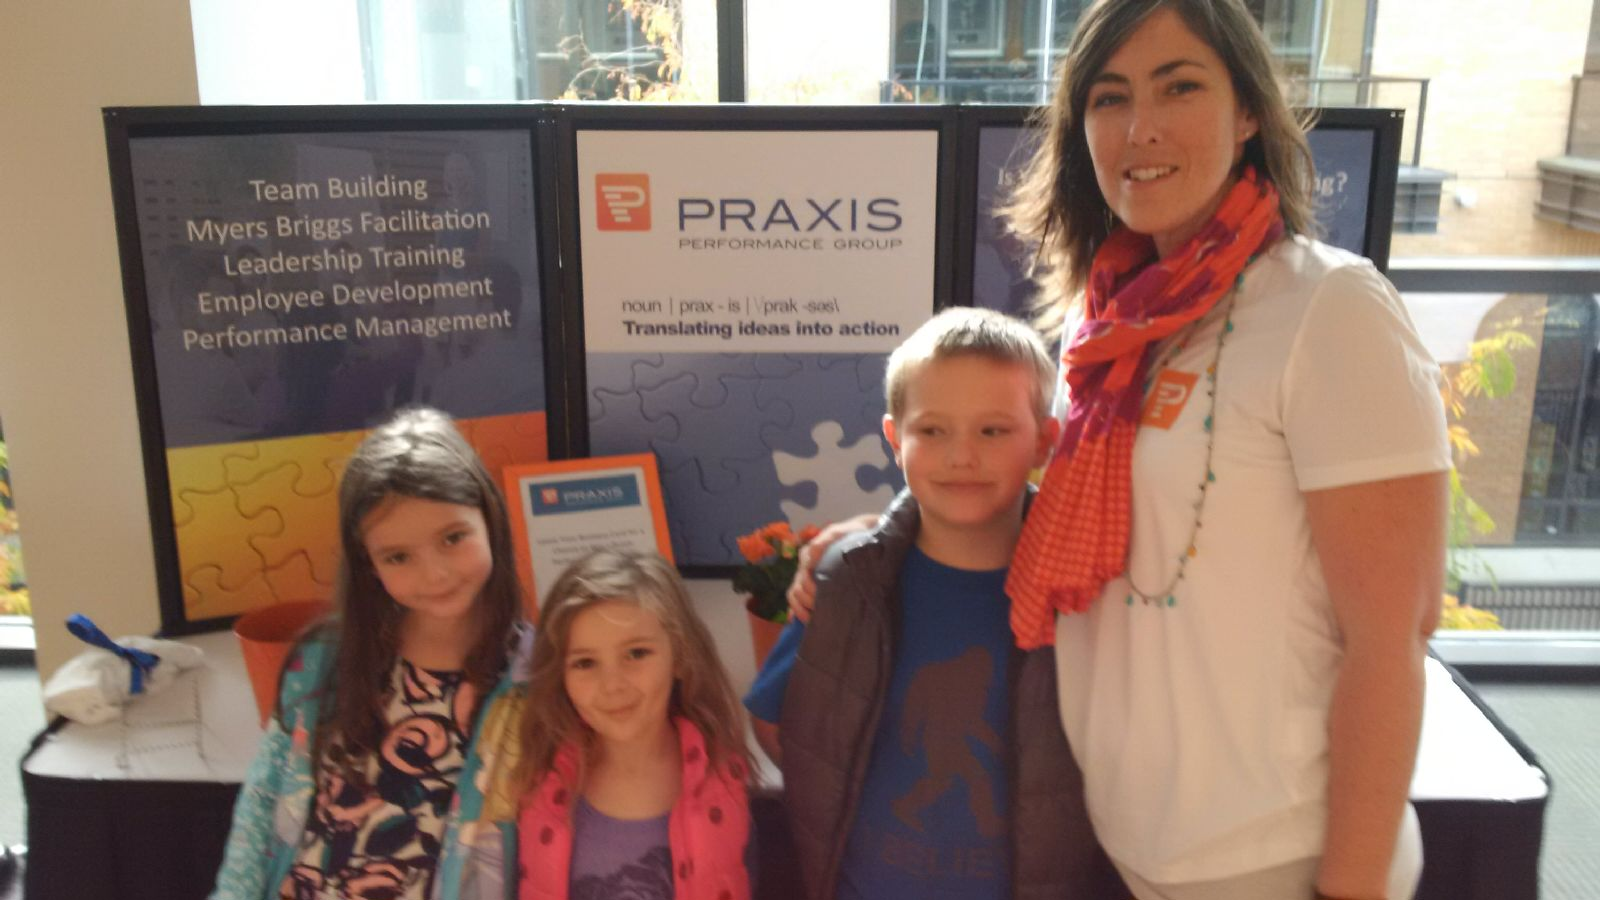 Stewart family representing the Praxis booth at the PowHertalks Nanaimo event